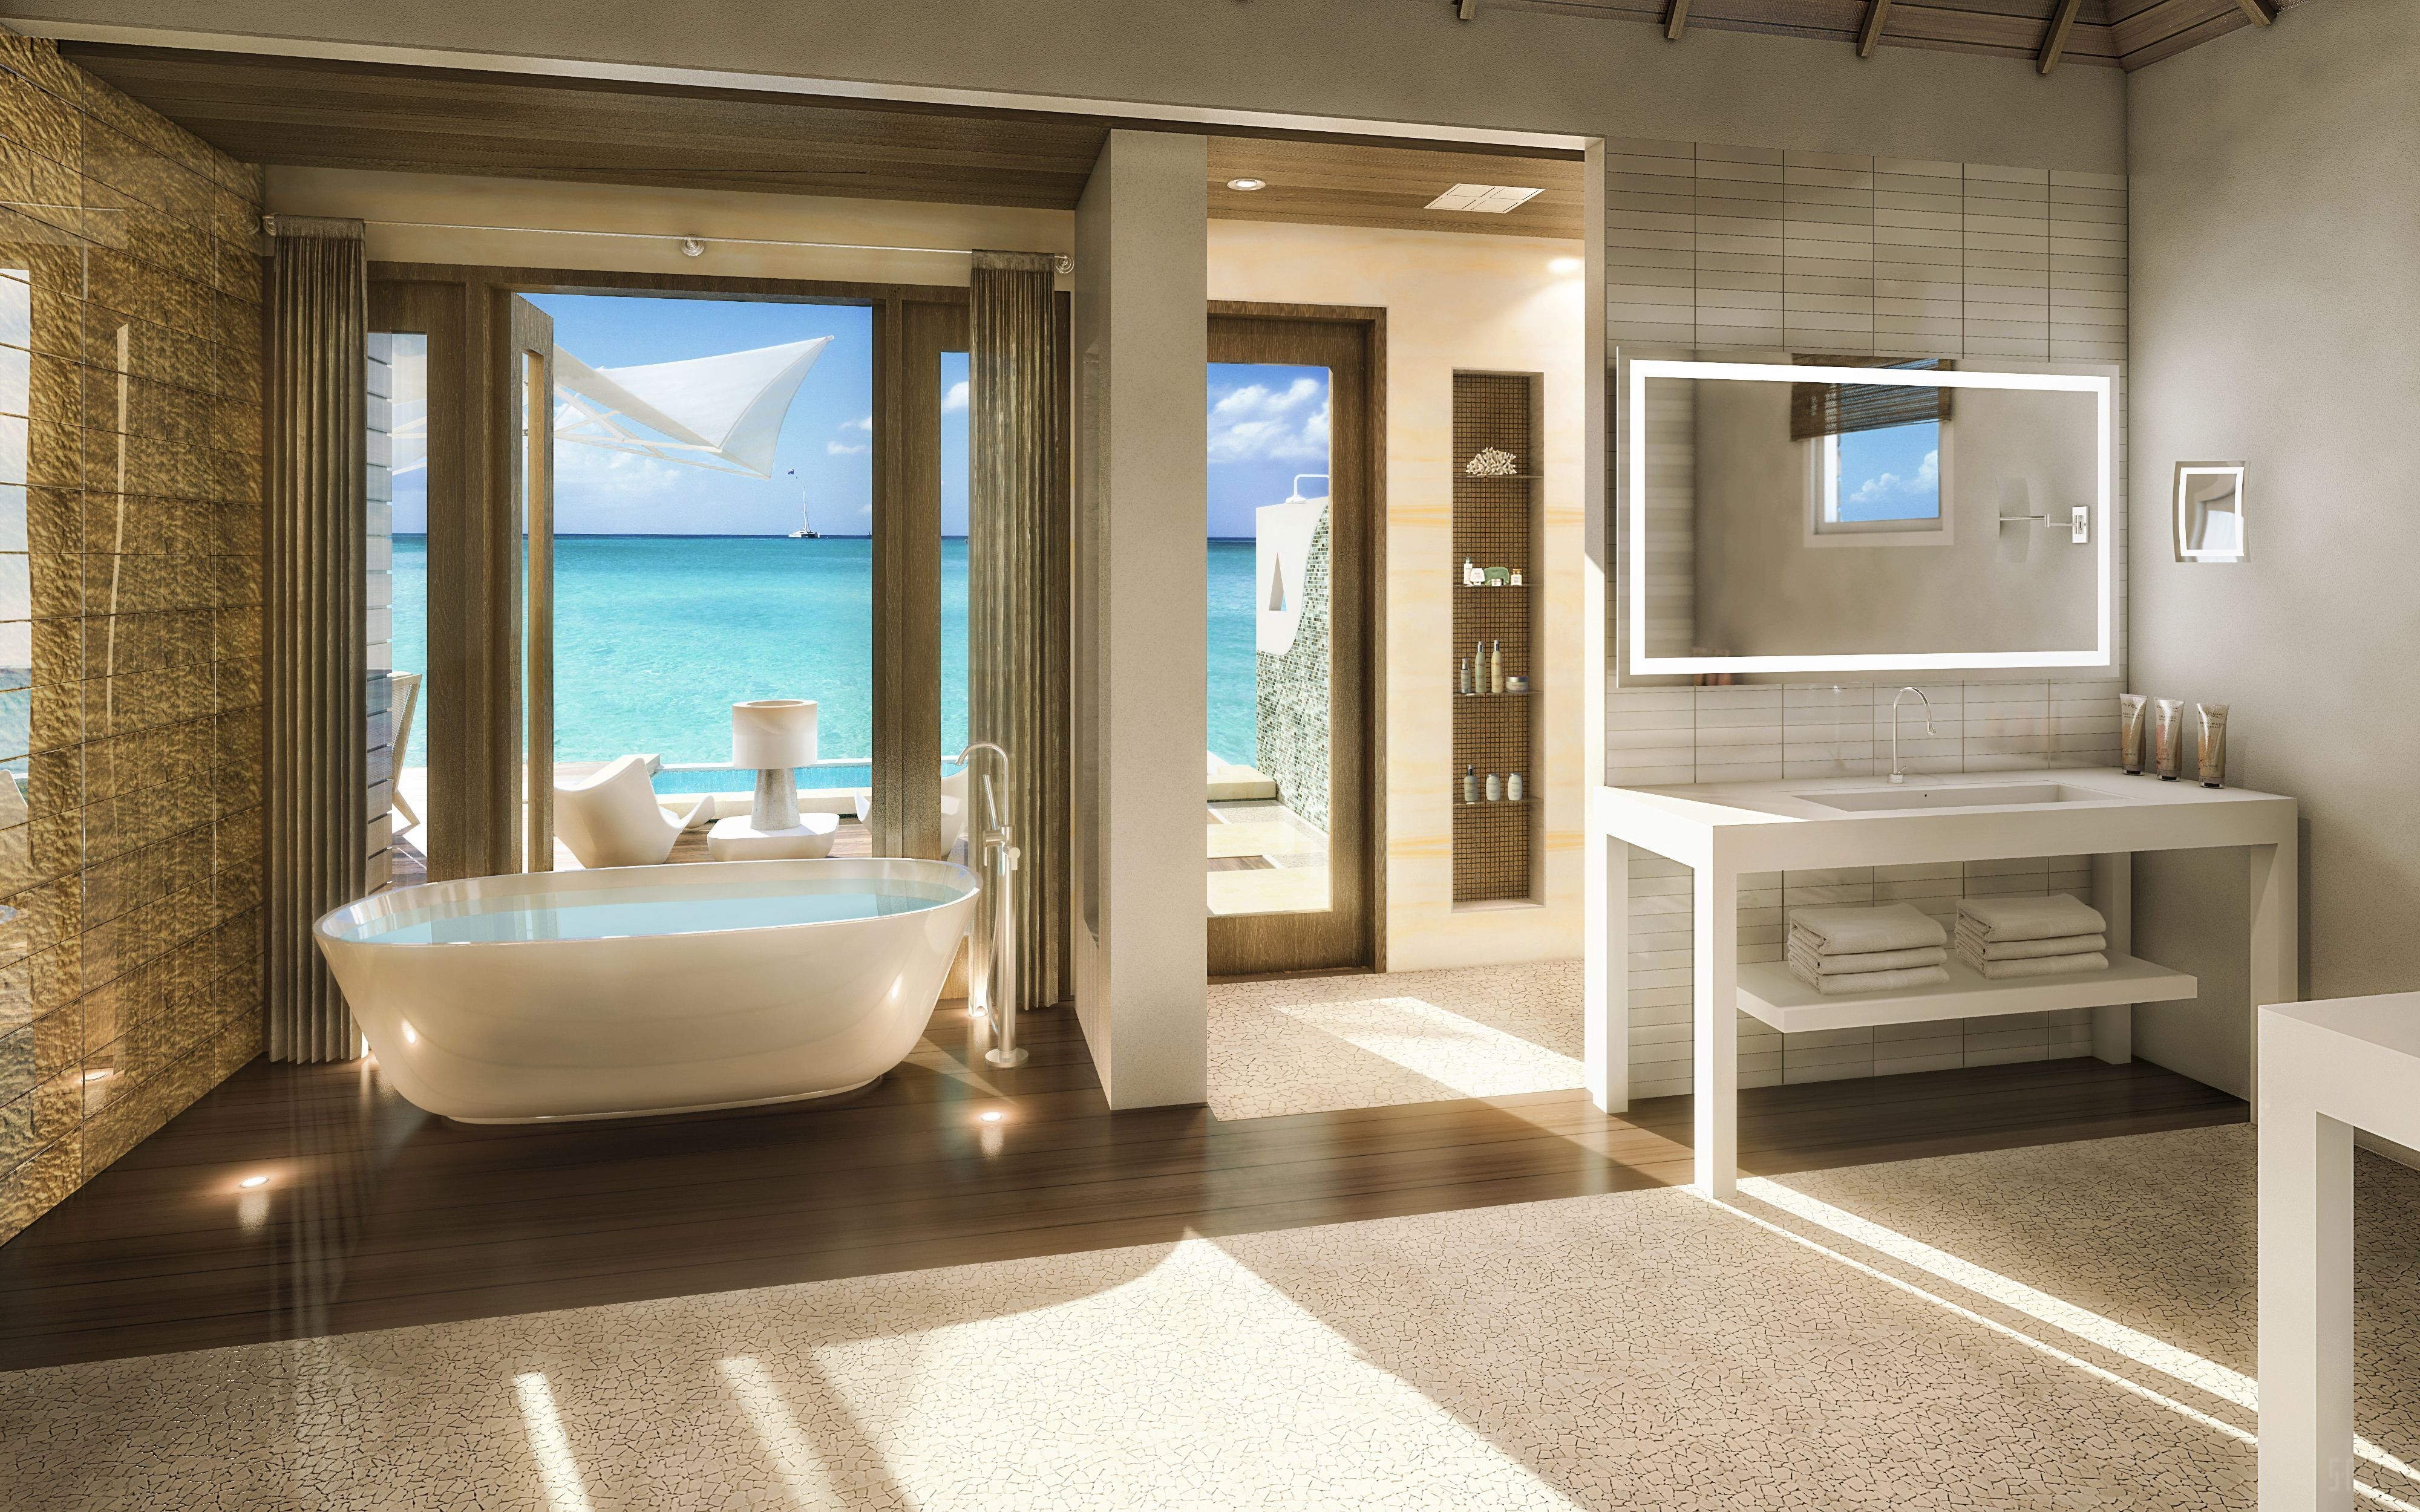 Bathroom Designs Jamaica these overwater hotel suites are insane (& all-inclusive